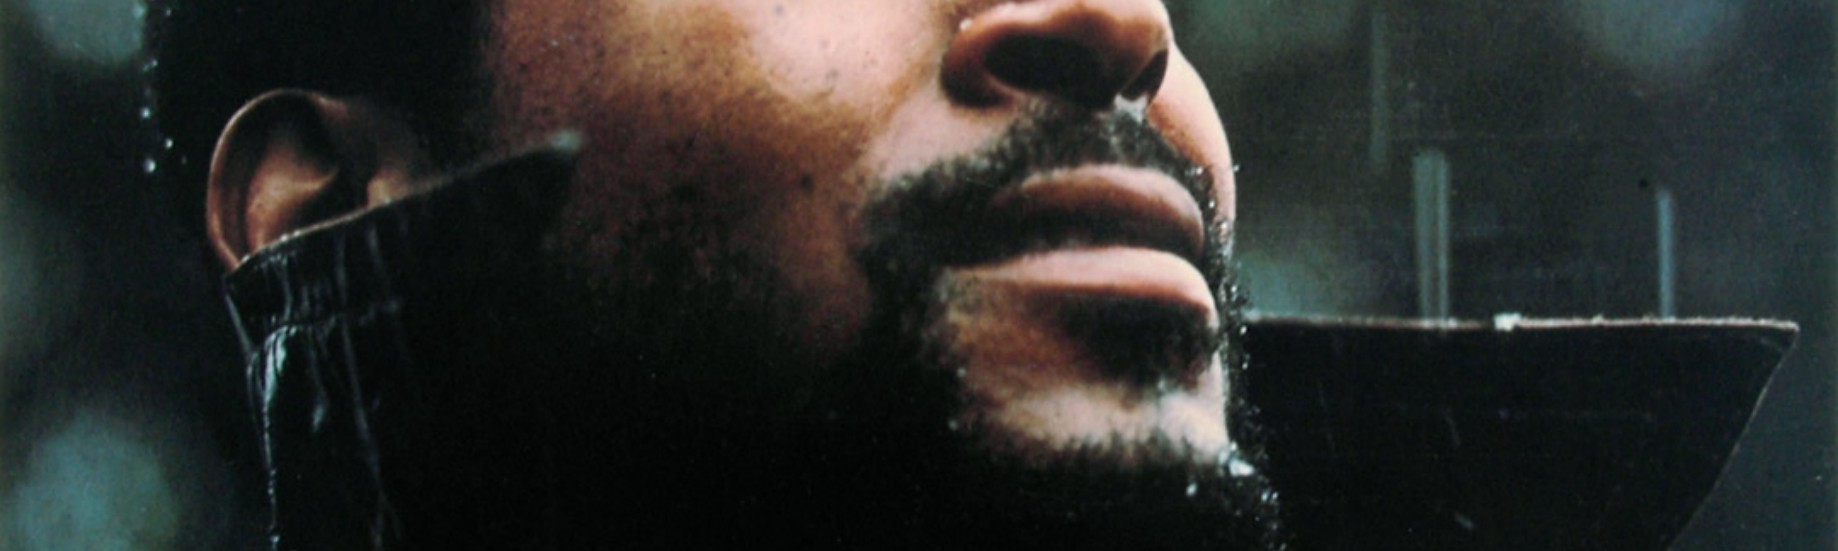 """76f347dcbfaedf Nobody Knows Nuthin': Motown's Berry Gordy vs. Marvin Gaye's """"What Going On"""""""